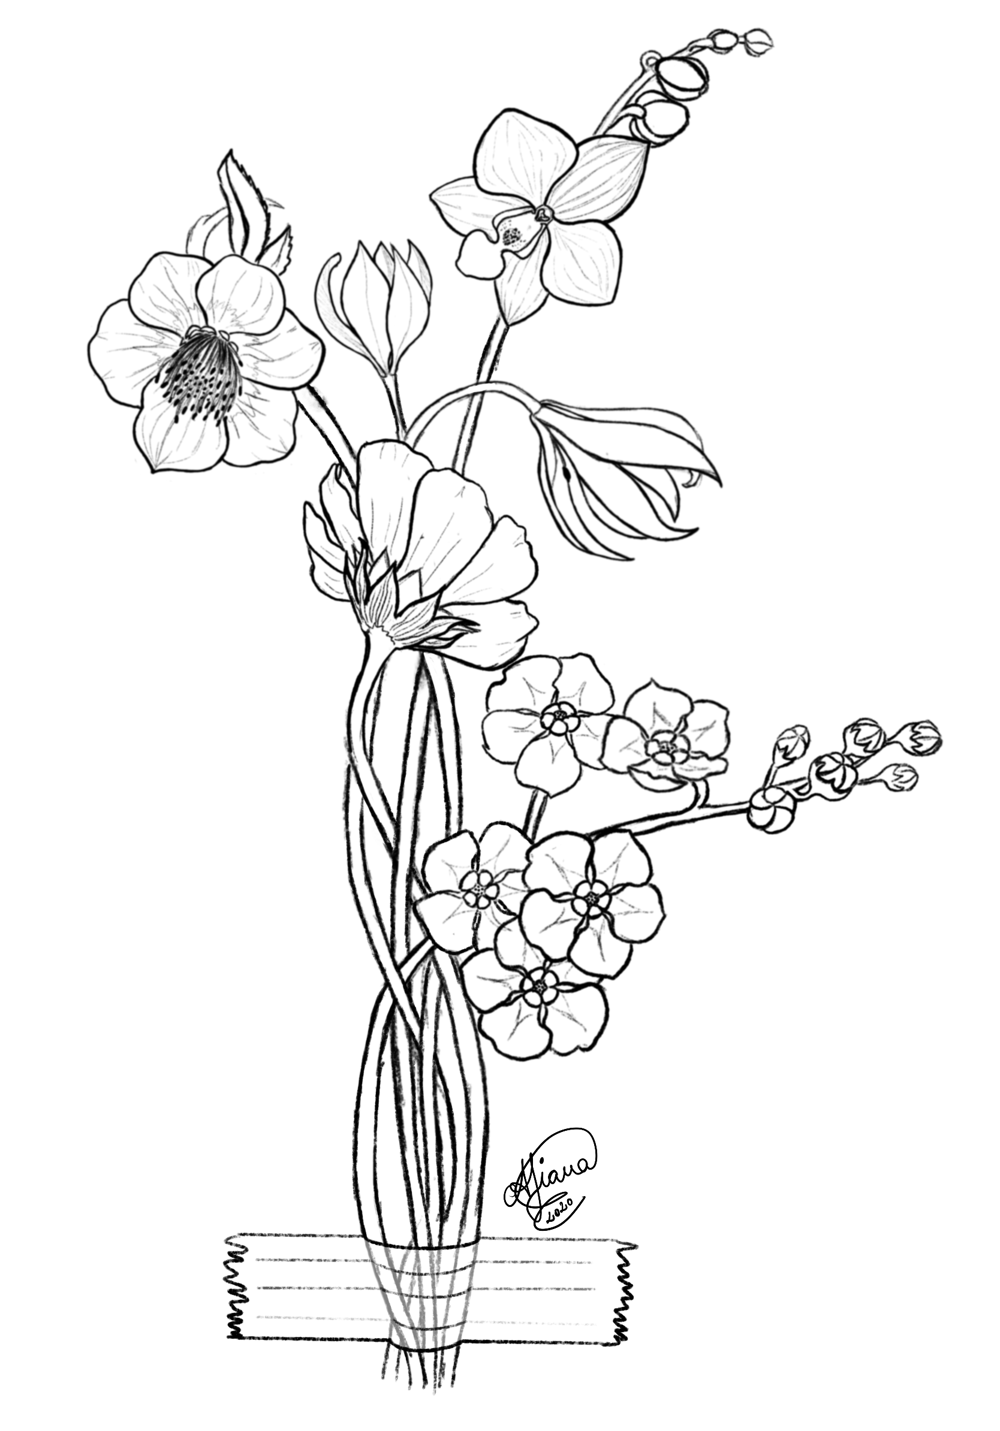 My first botanical illustration - image 2 - student project